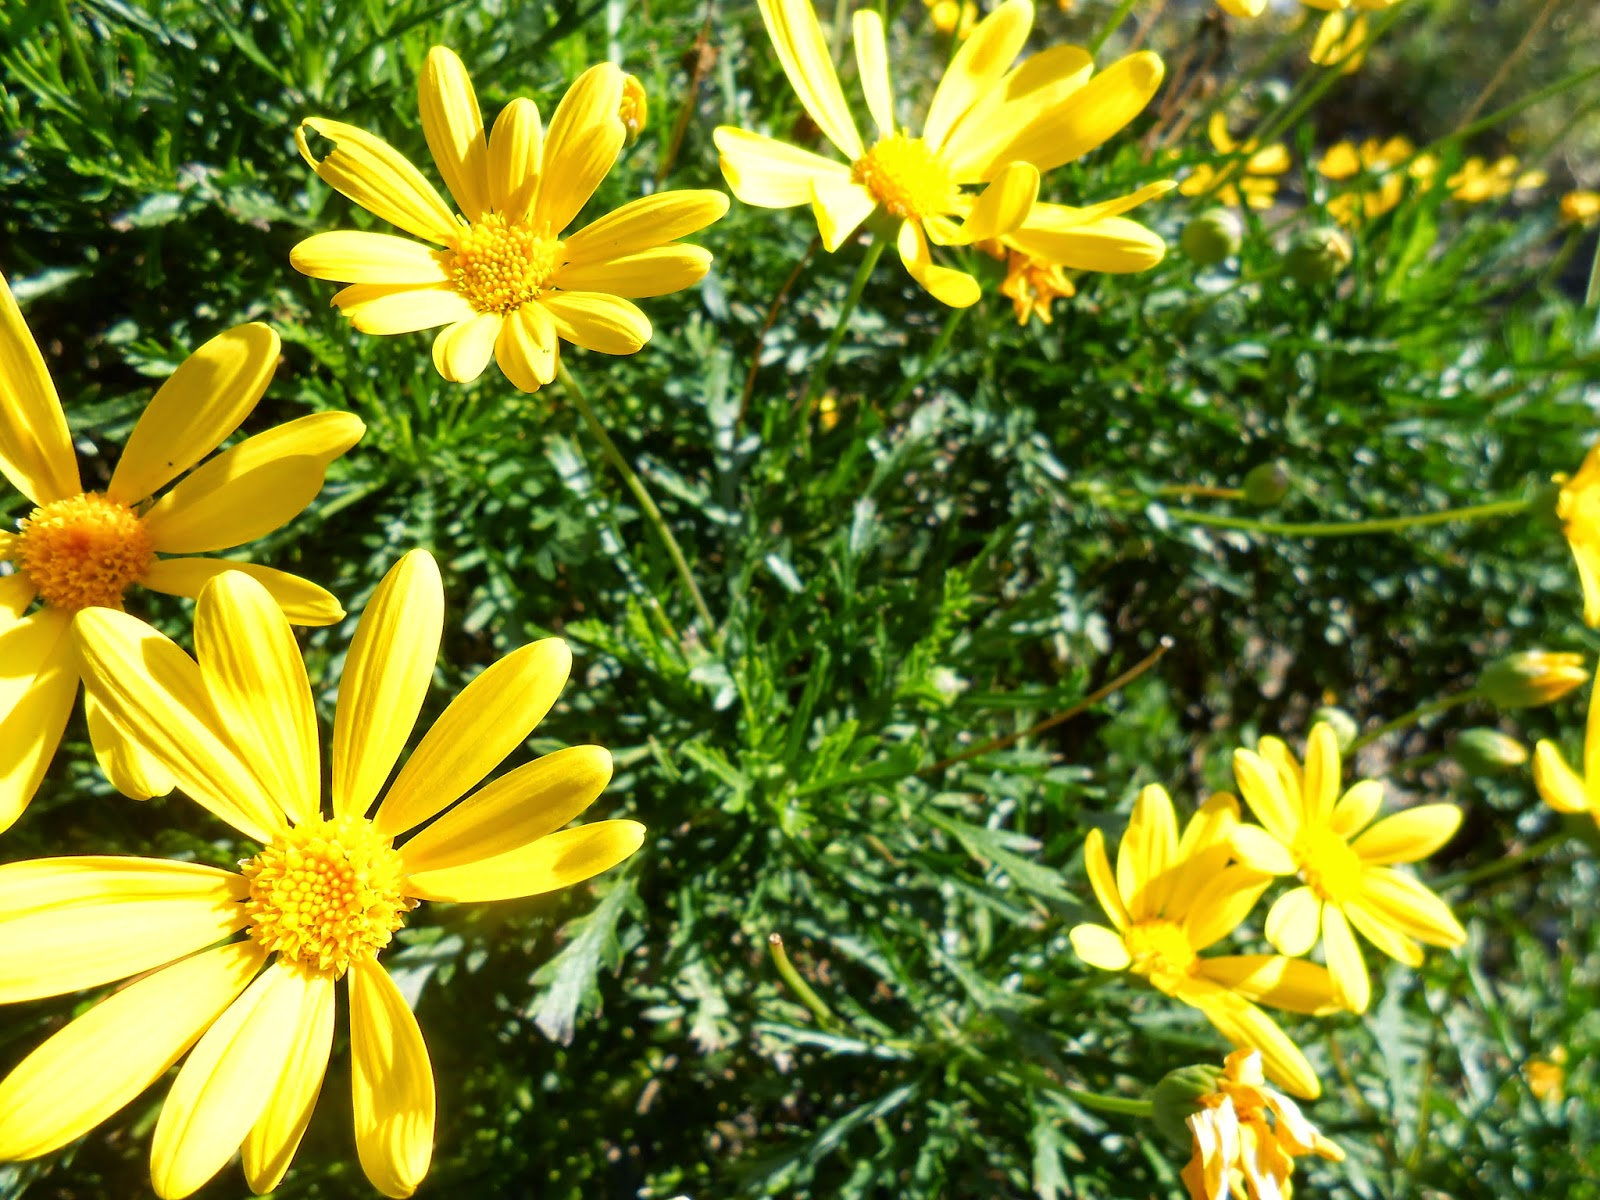 powerful relationships, blooming relationships, spiritual awakening, yellow flower photo